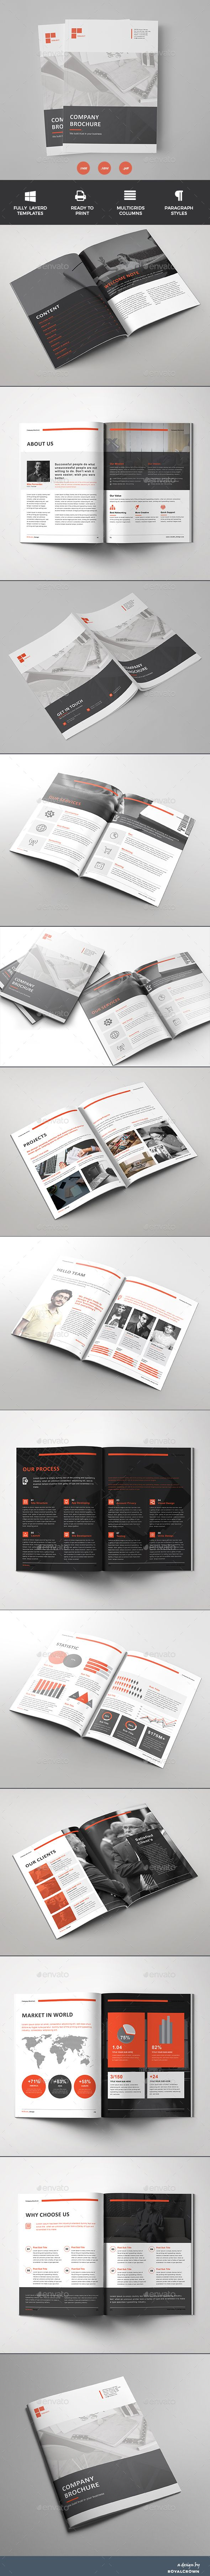 Brochure — InDesign INDD #bifold #colorful • Download ➝ https://graphicriver.net/item/brochure/18820472?ref=pxcr